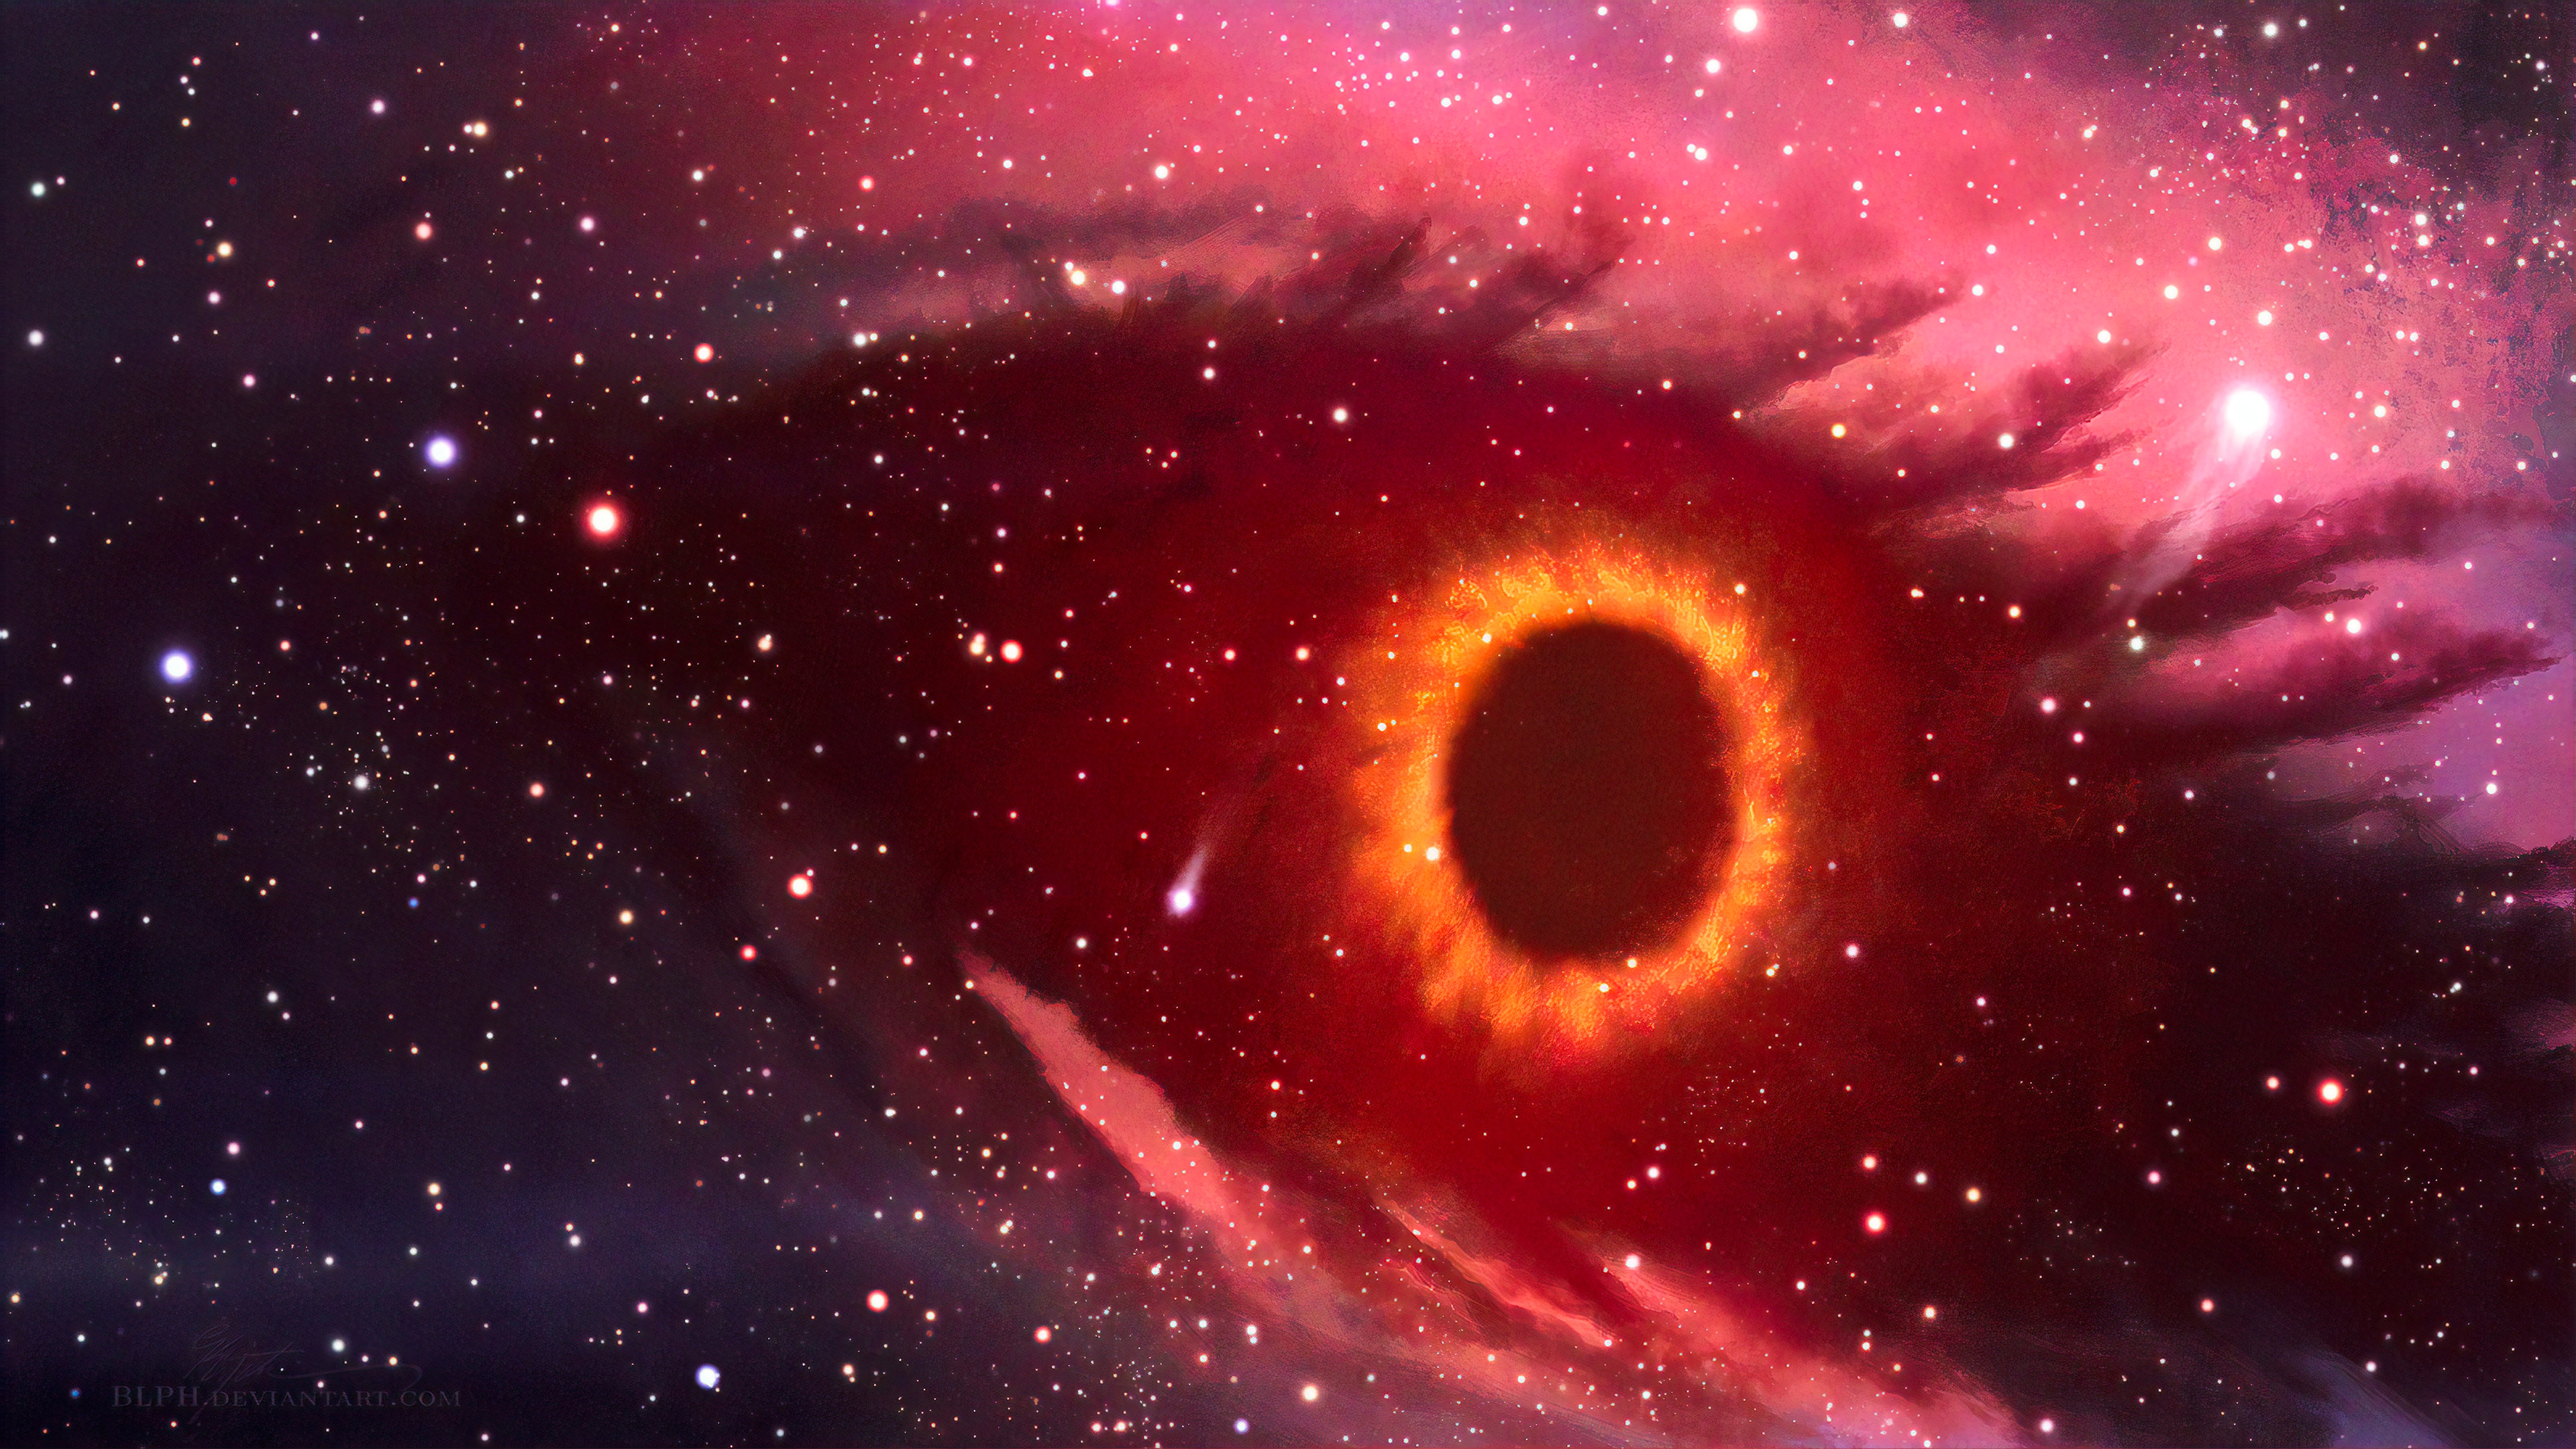 Black Hole Eye 4k Hd Digital Universe 4k Wallpapers Images Backgrounds Photos And Pictures